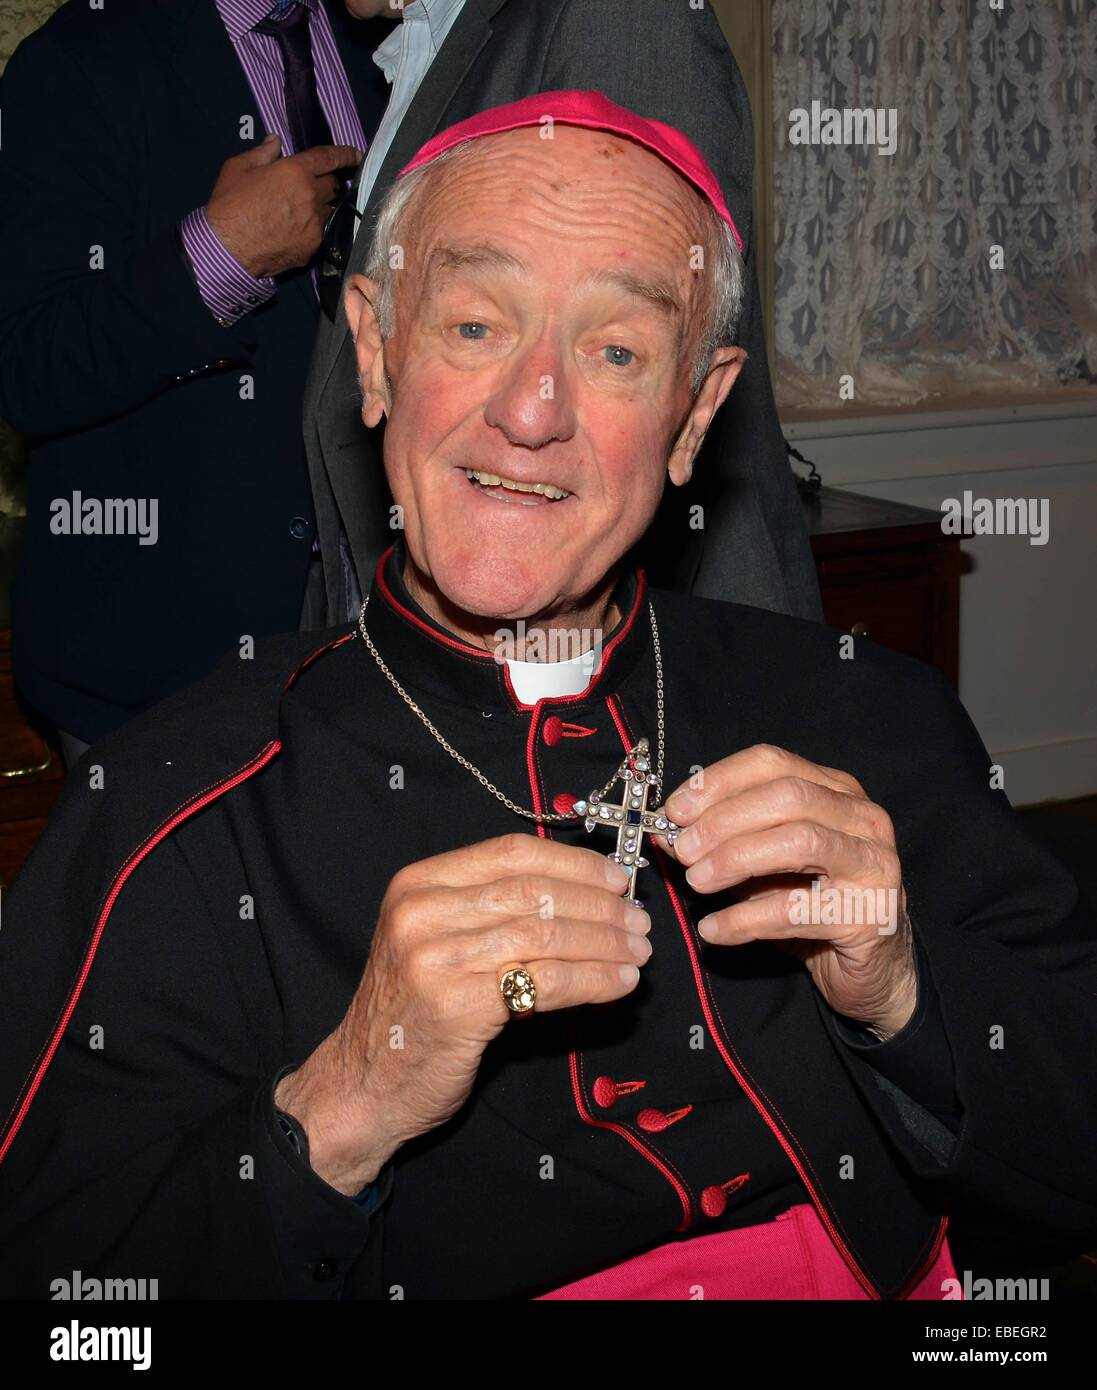 Father Ted's Father Jack actor Frank Kelly dons his priestly